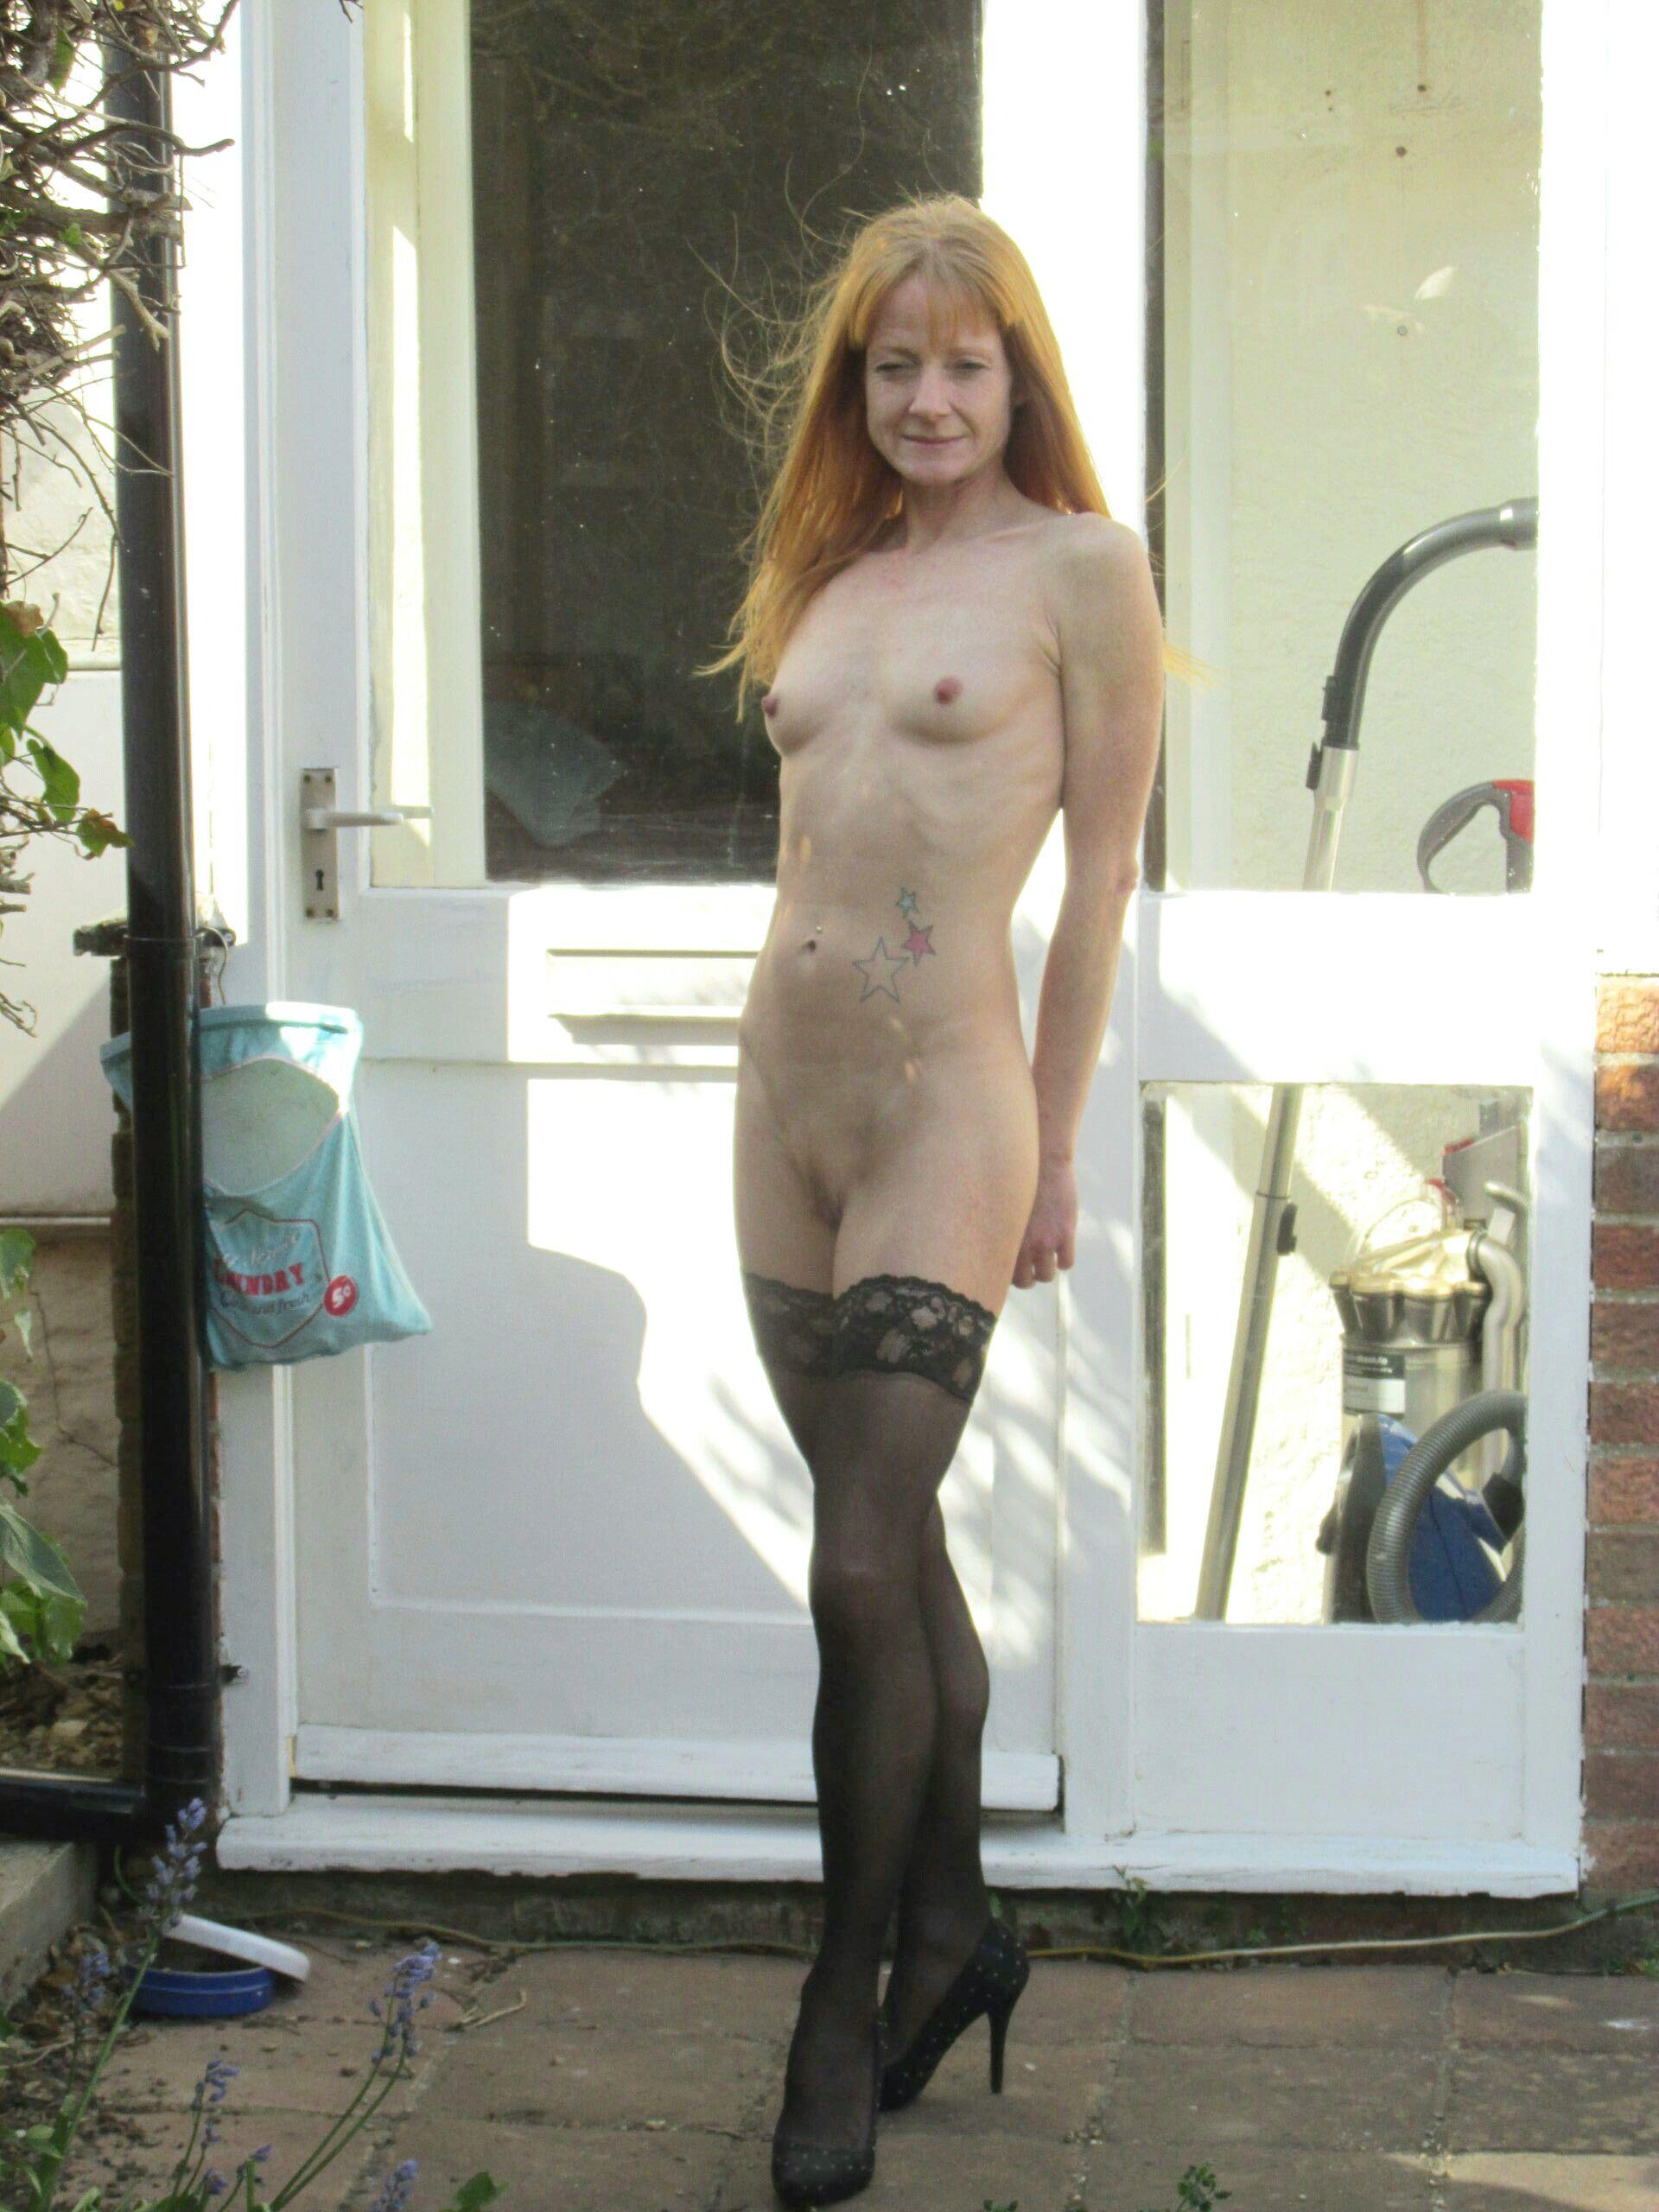 Redheaded mature slut by the door. real nudity public nudity mature